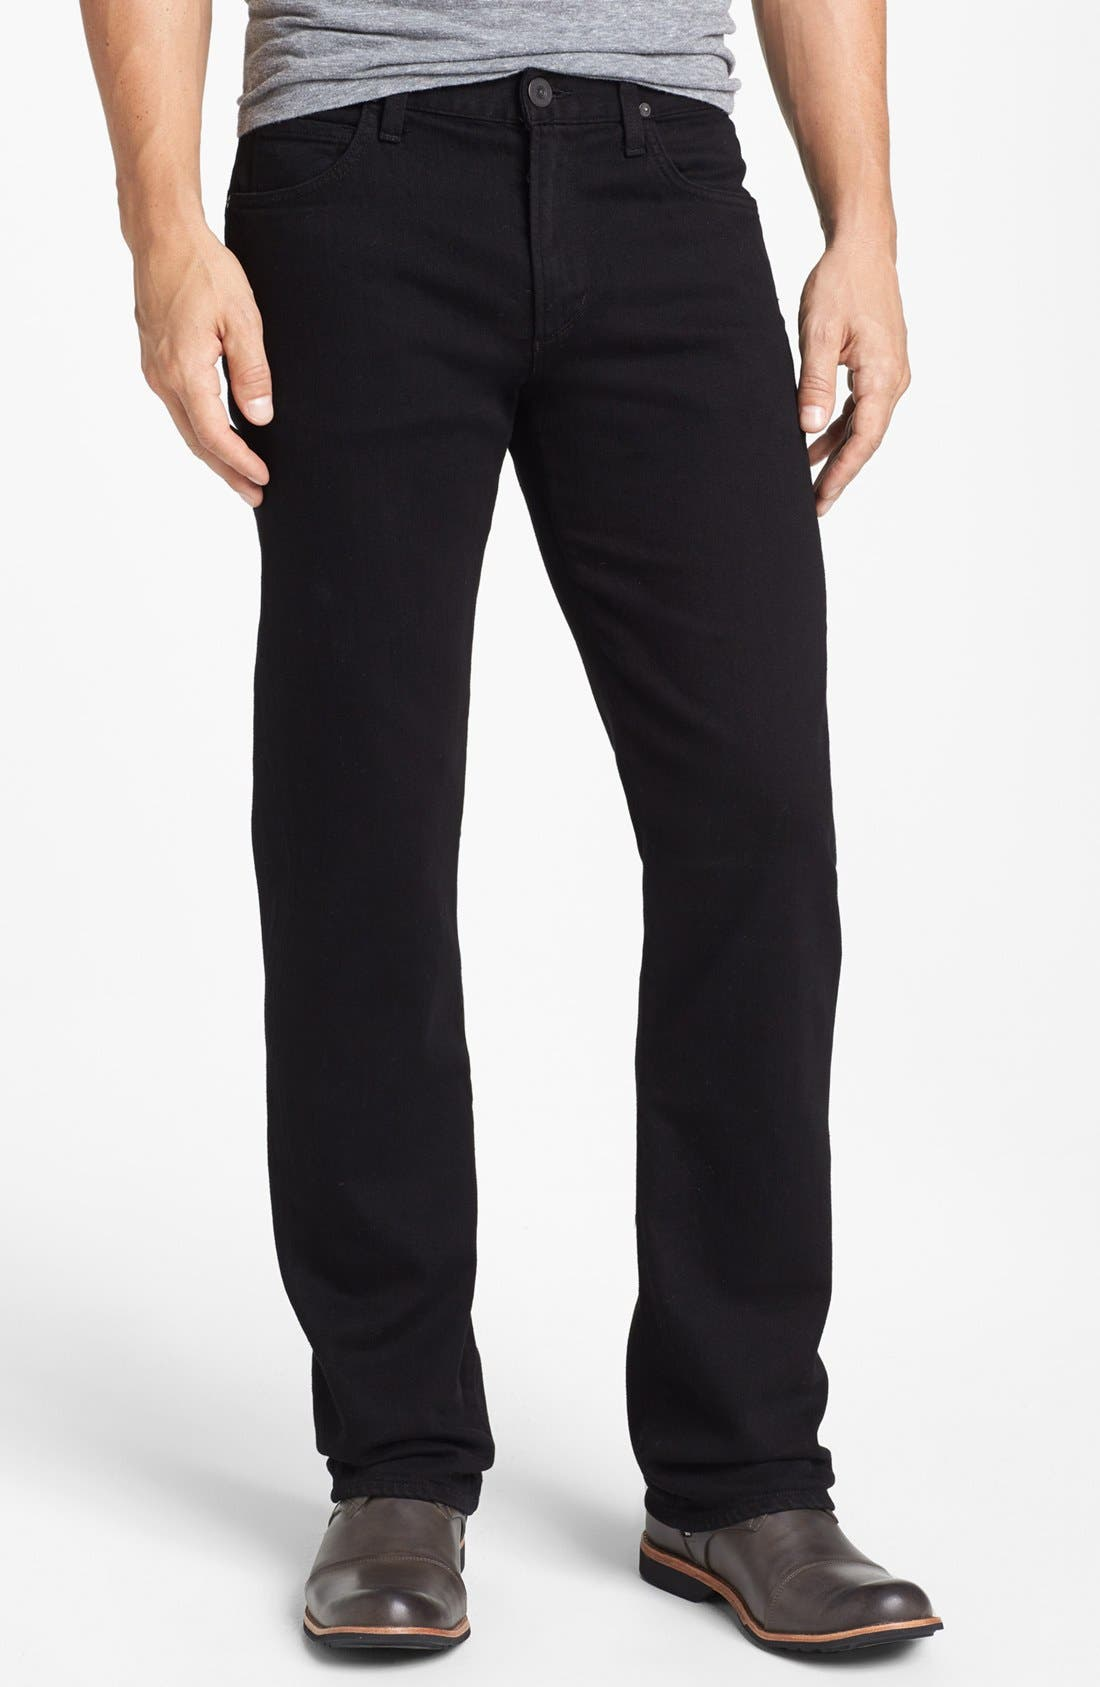 Alternate Image 1 Selected - Citizens of Humanity 'Sid' Classic Straight Leg Jeans (Midnight Black)